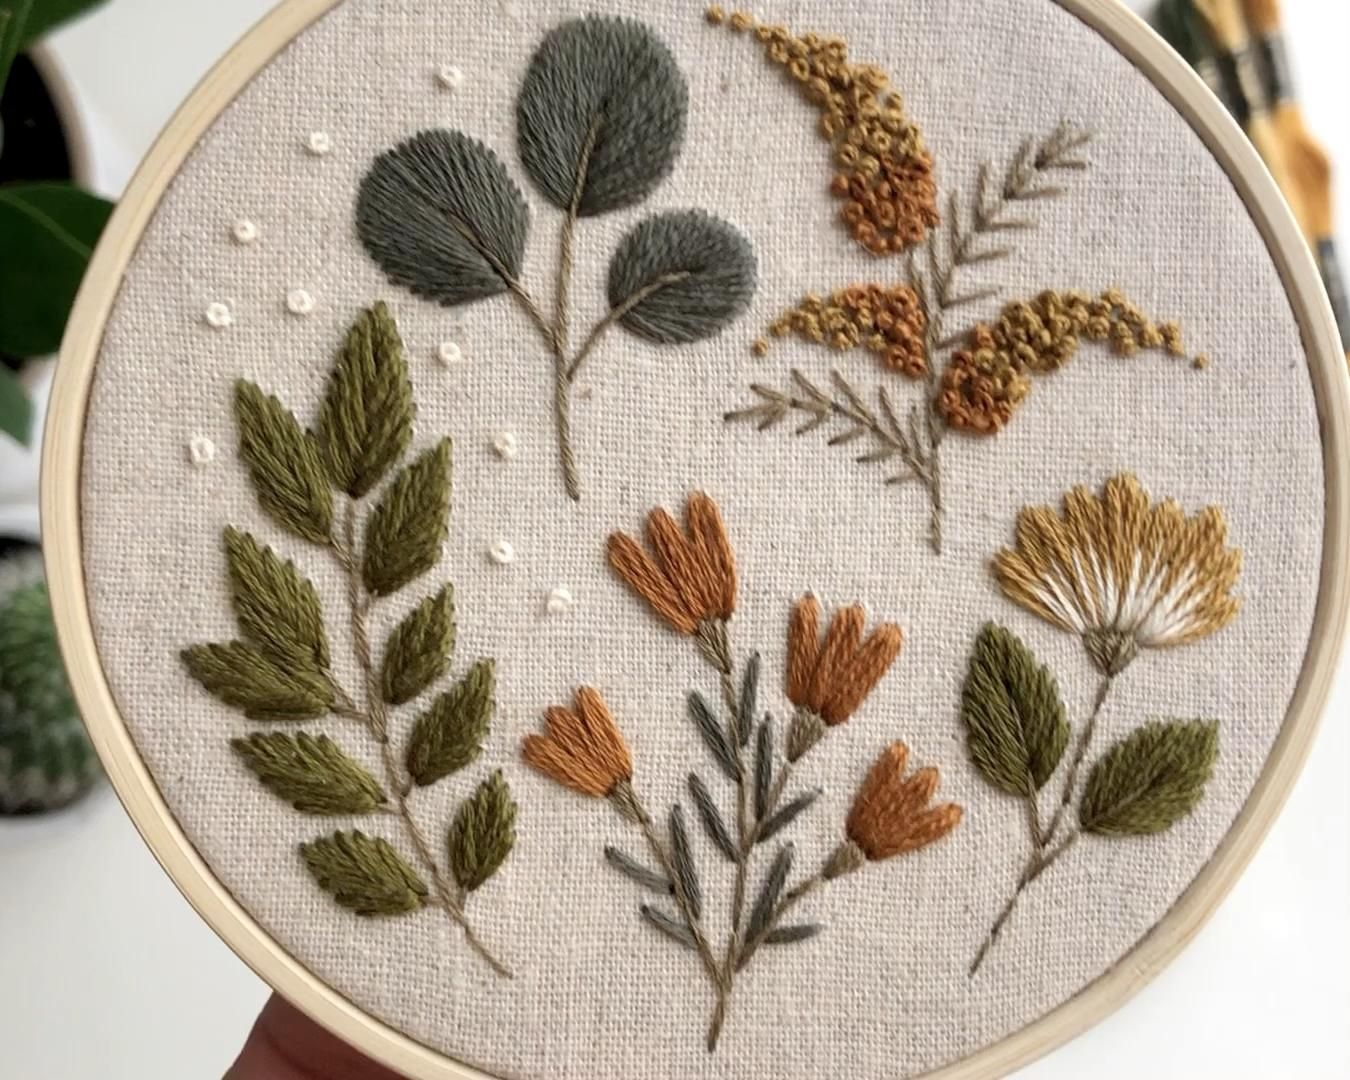 Botanical embroidery hoop – Decor